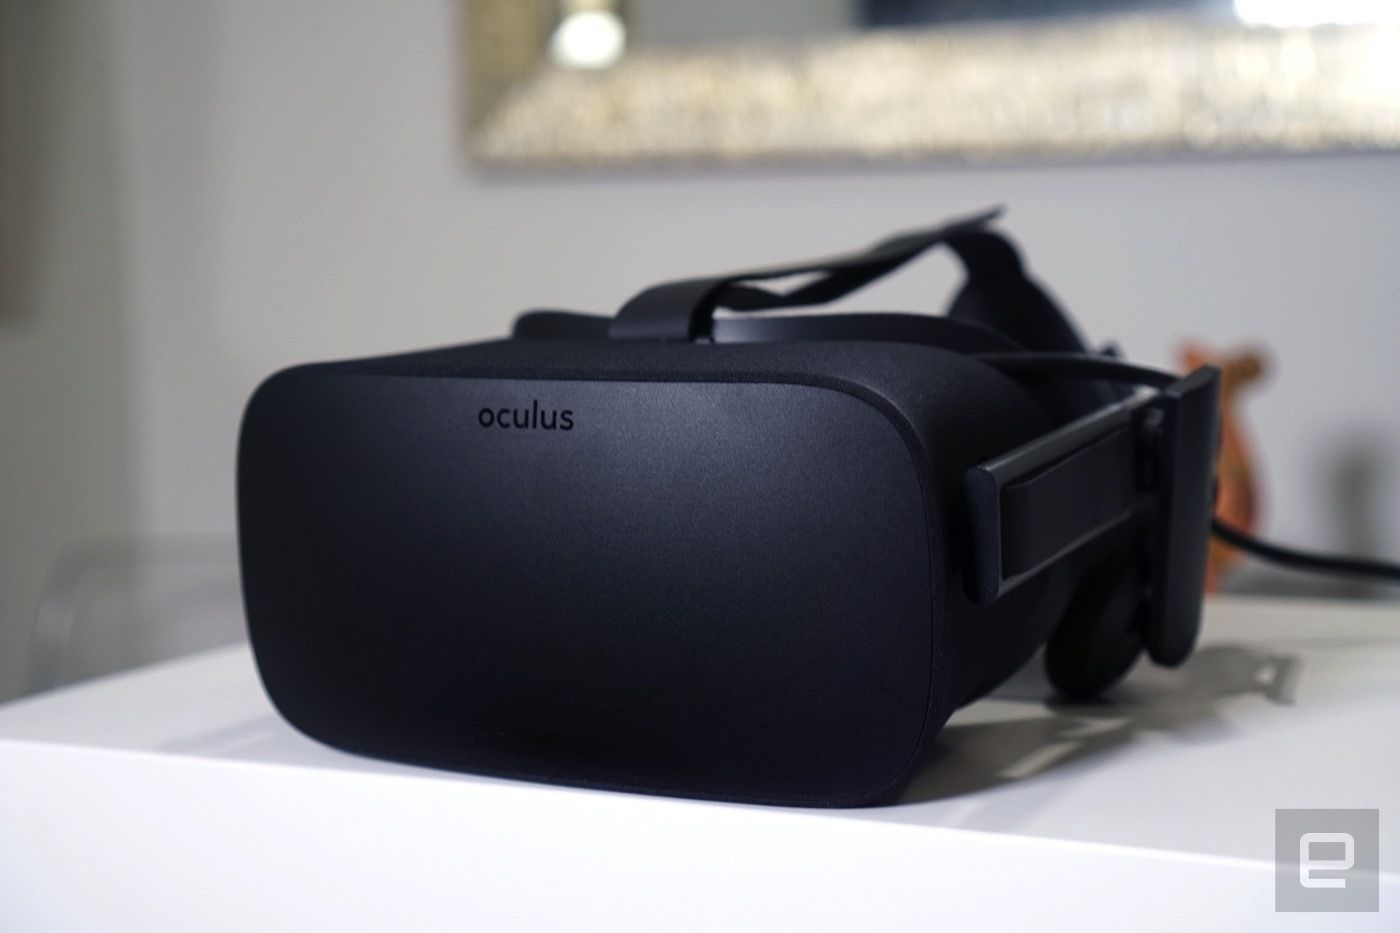 This week in tech history: Three years of Oculus figuring out VR | DeviceDaily.com